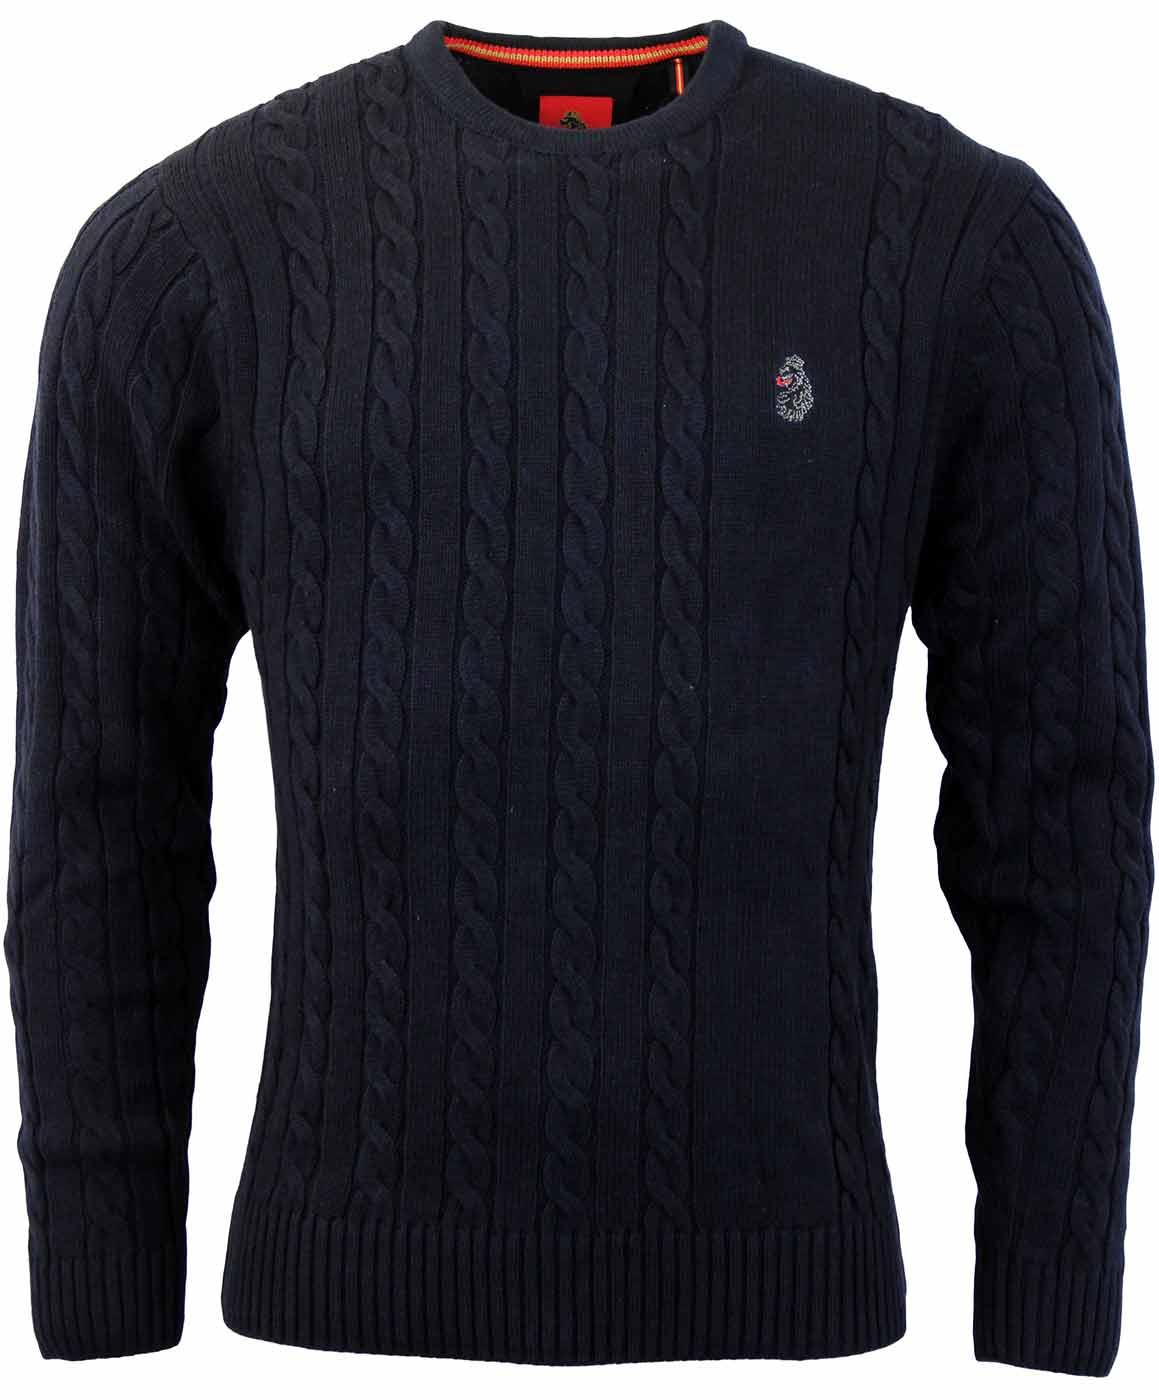 LUKE 1977 Retro Horton Mens Cable Knit Mod Jumper In Dark Navy 223dbc3e2